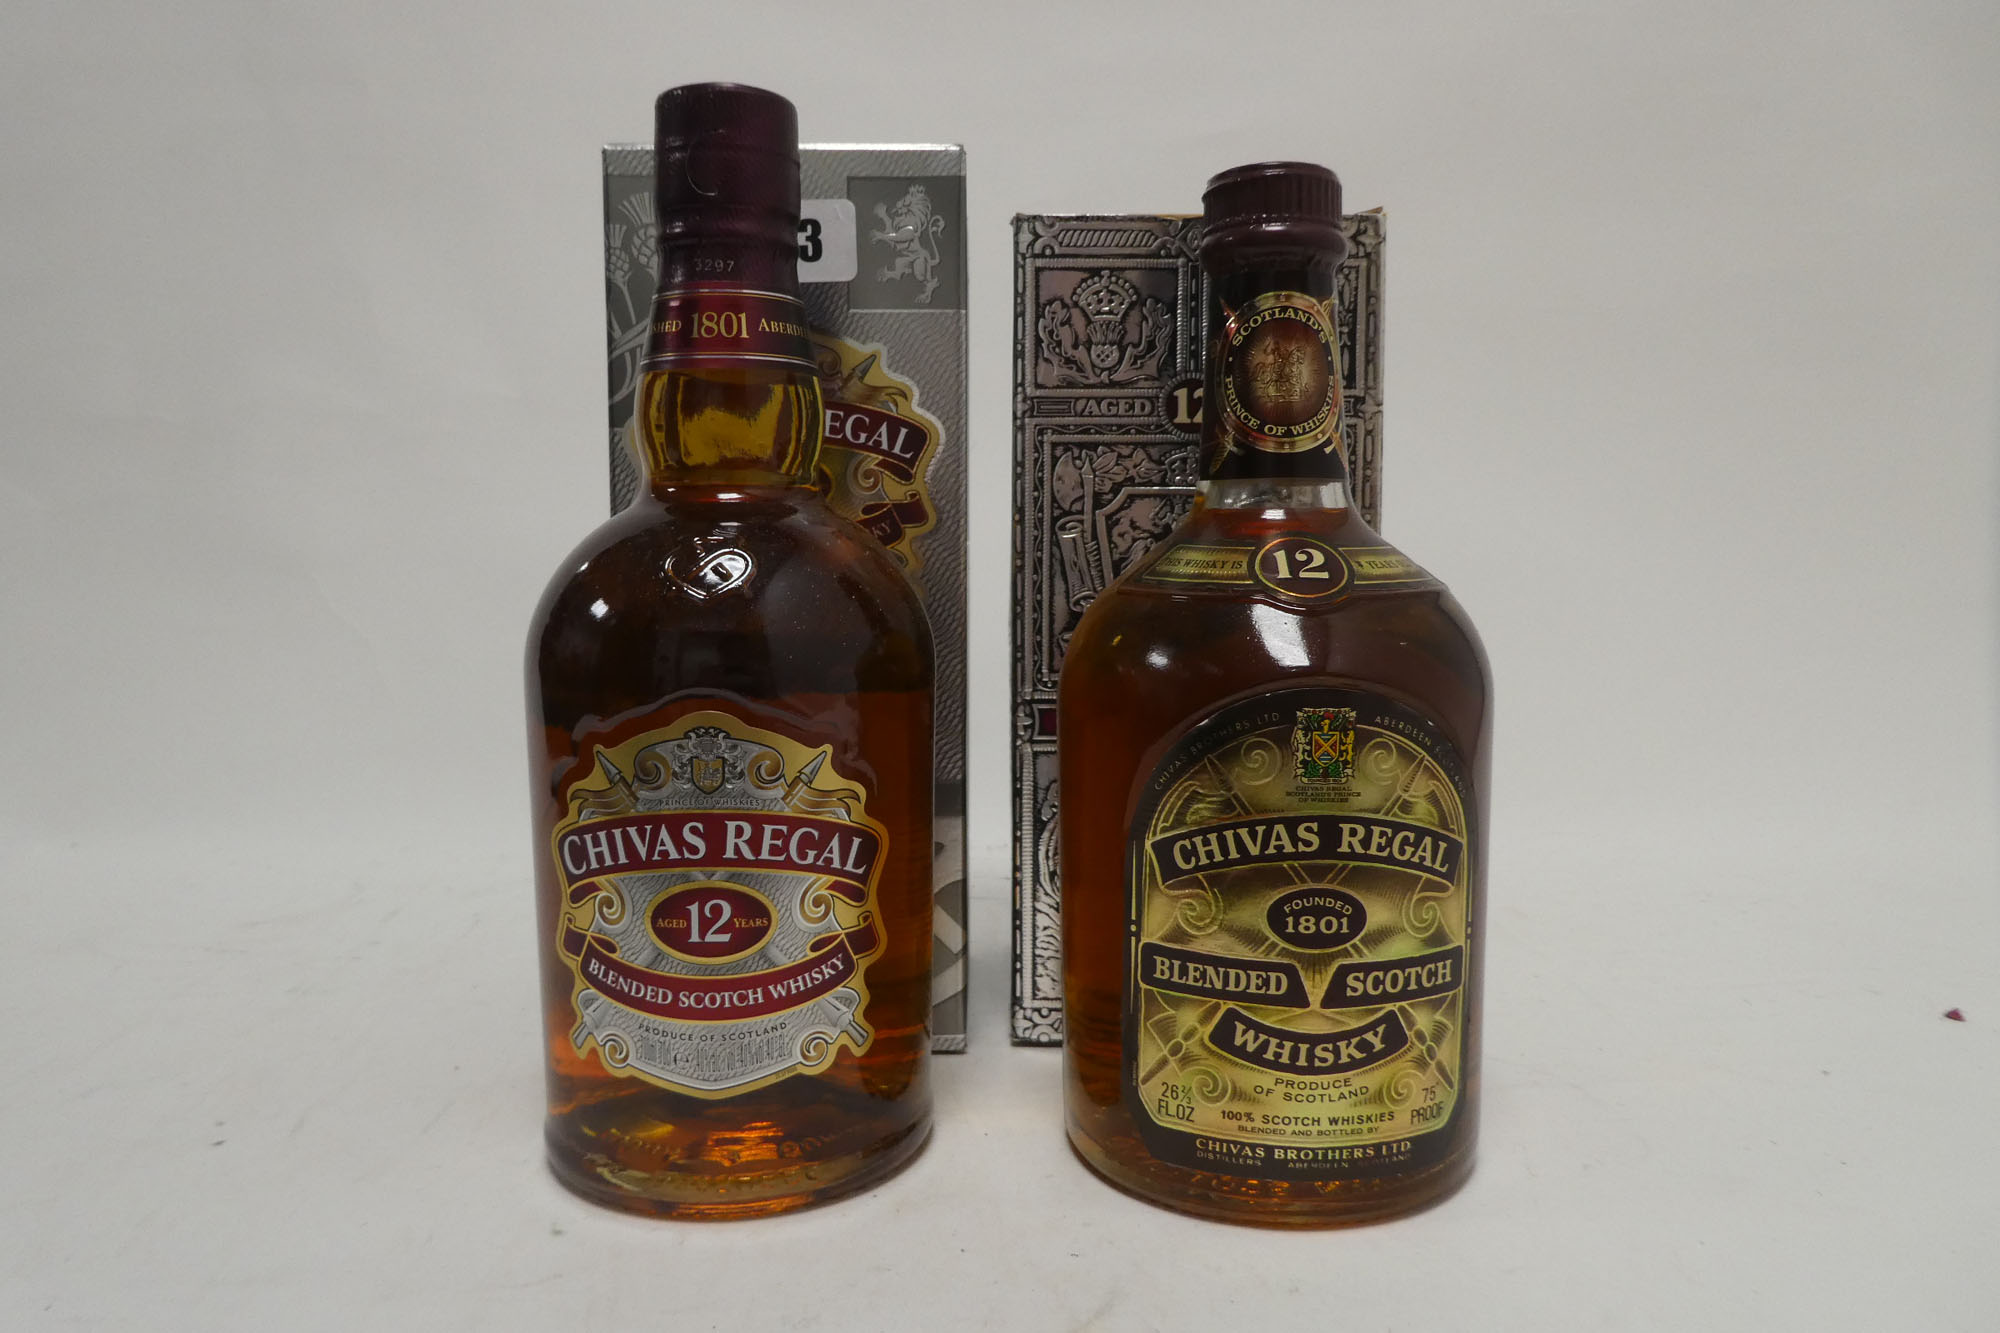 2 bottles of Chivas Regal 12 year old Scotch Whisky with boxes,